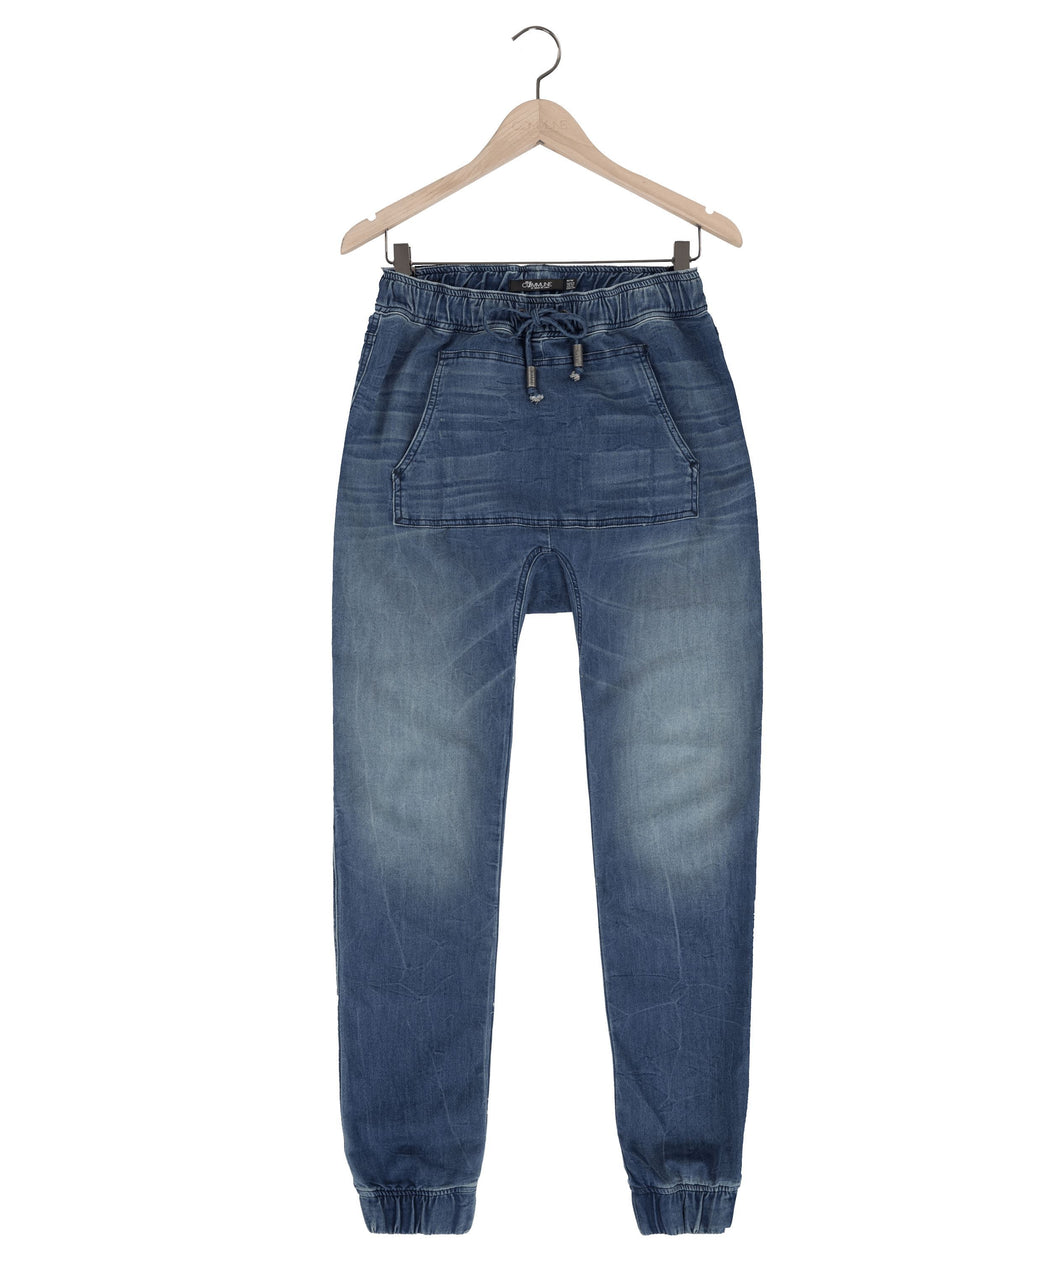 Jasper kangaroo jeans in avatar blue Bottom DE LA COMMUNE